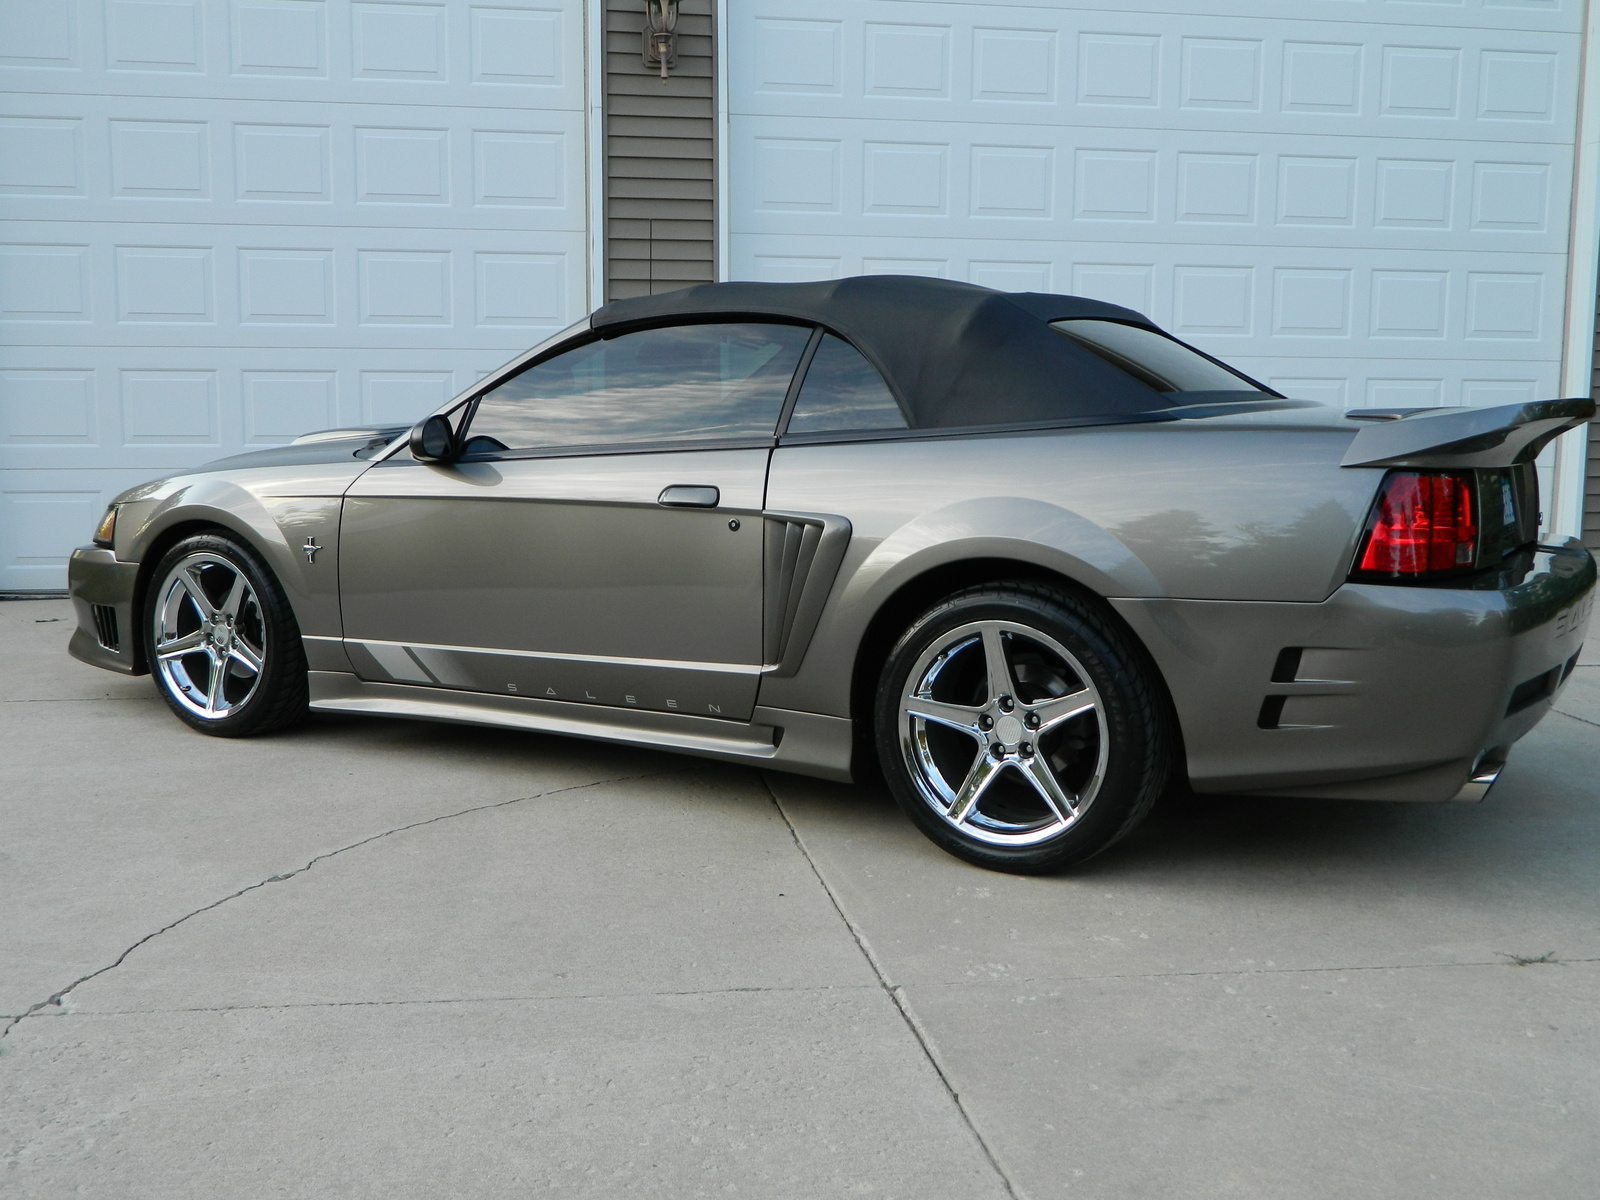 2001 ford mustang pictures cargurus. Black Bedroom Furniture Sets. Home Design Ideas